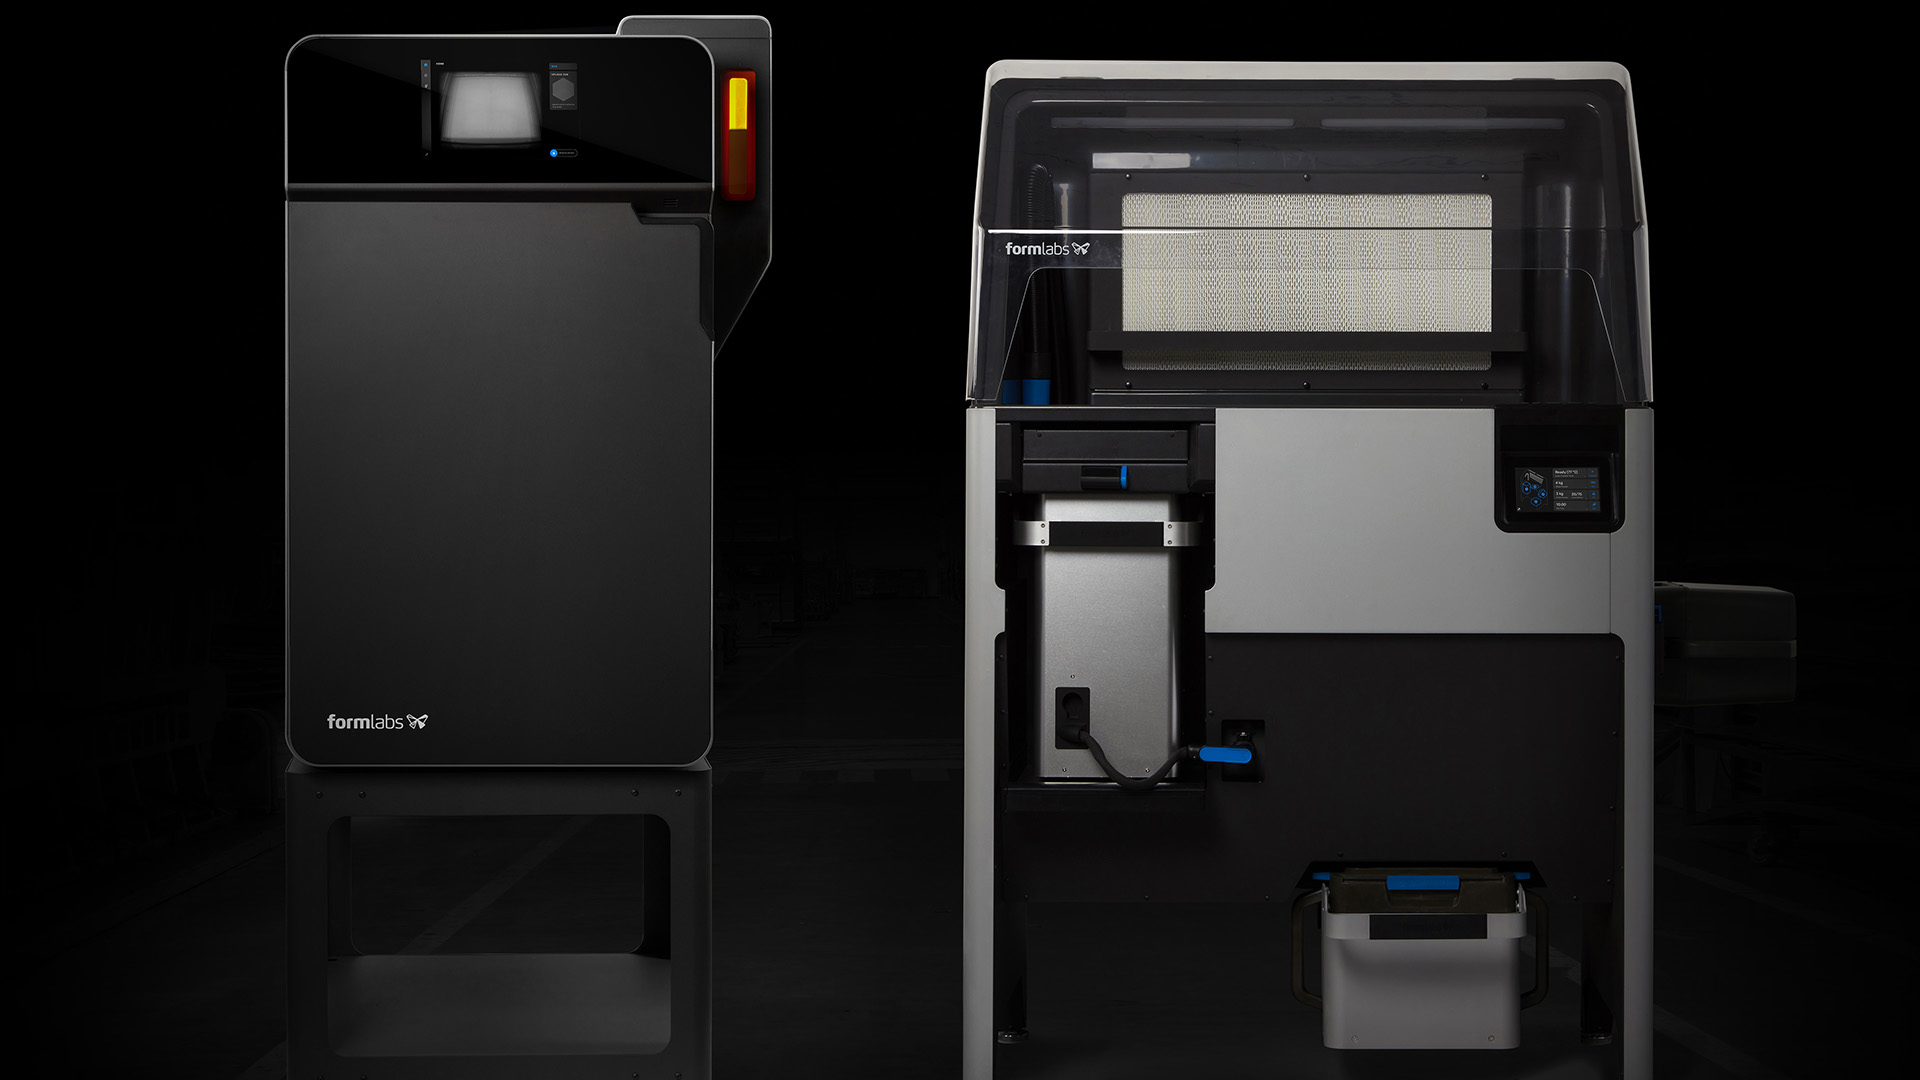 Formlabs-Fuse-1-Fuse-Sift-System_1920x1080.jpg